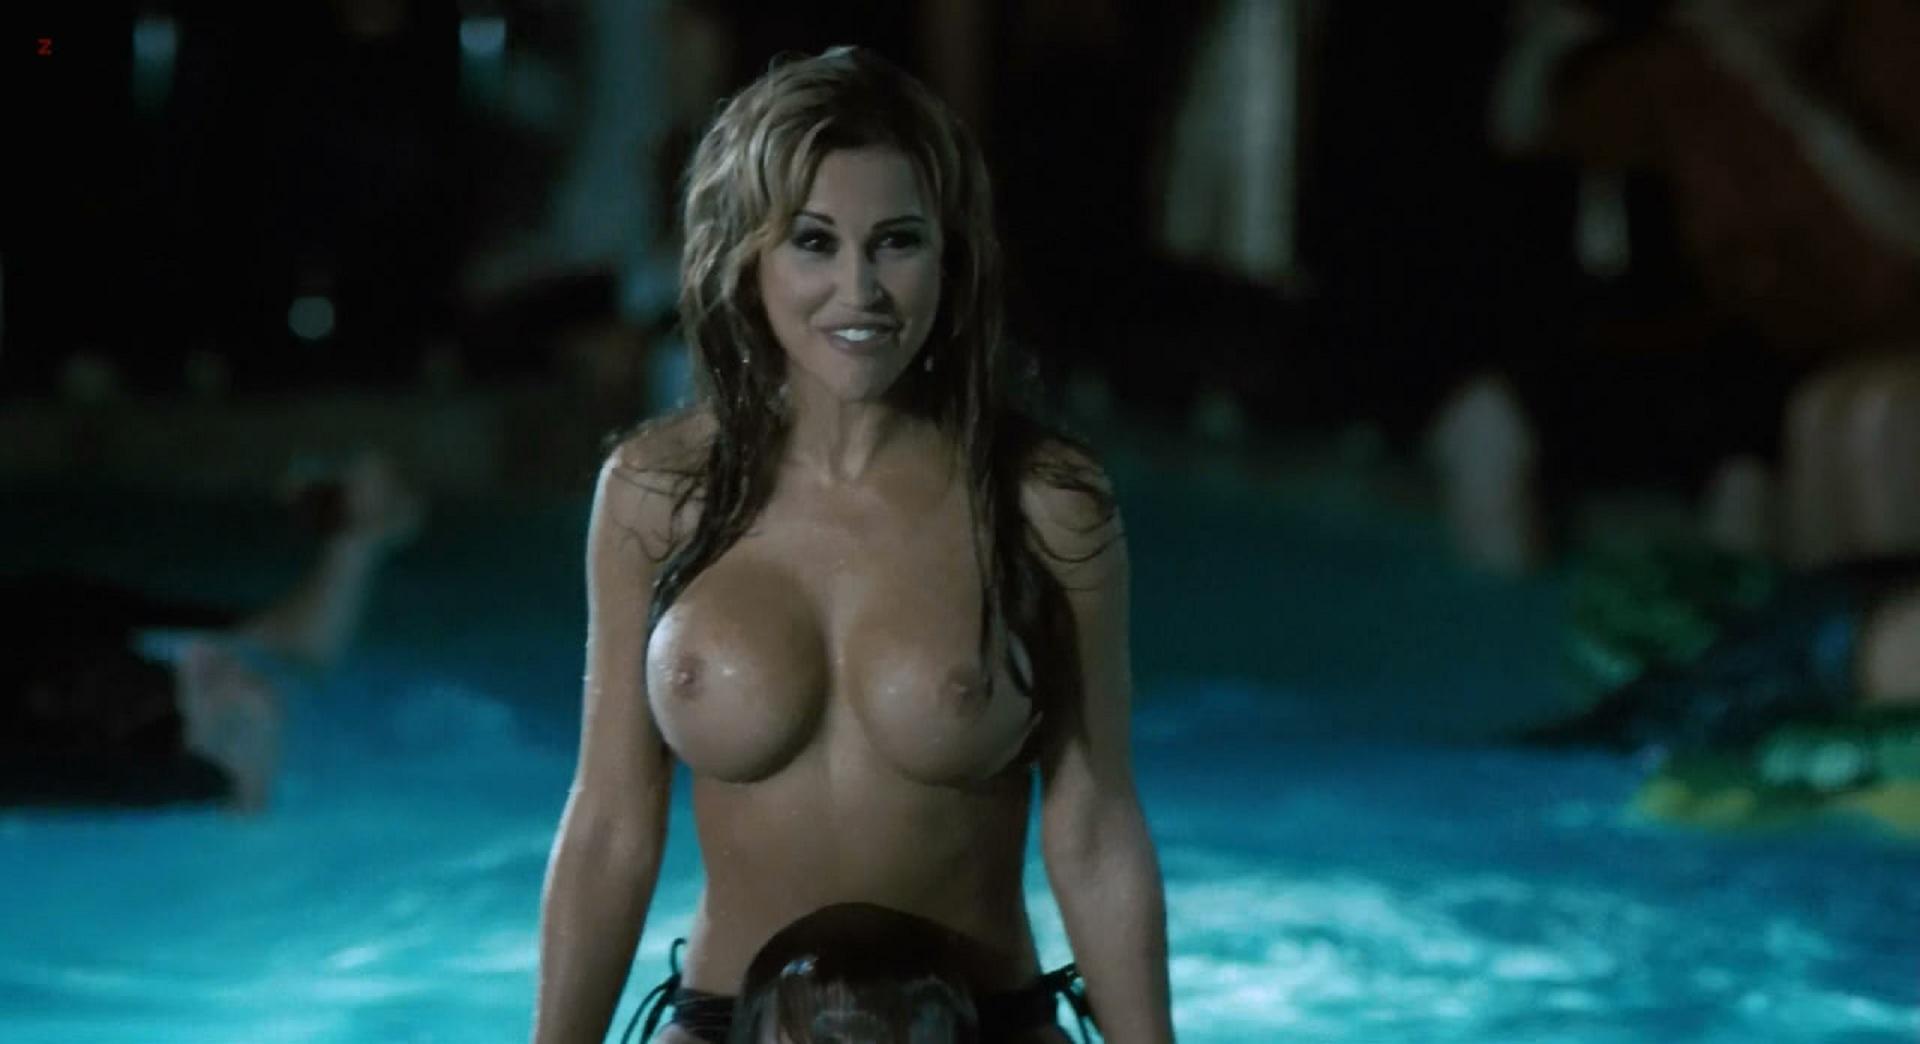 Video de jennifer walcott desnuda